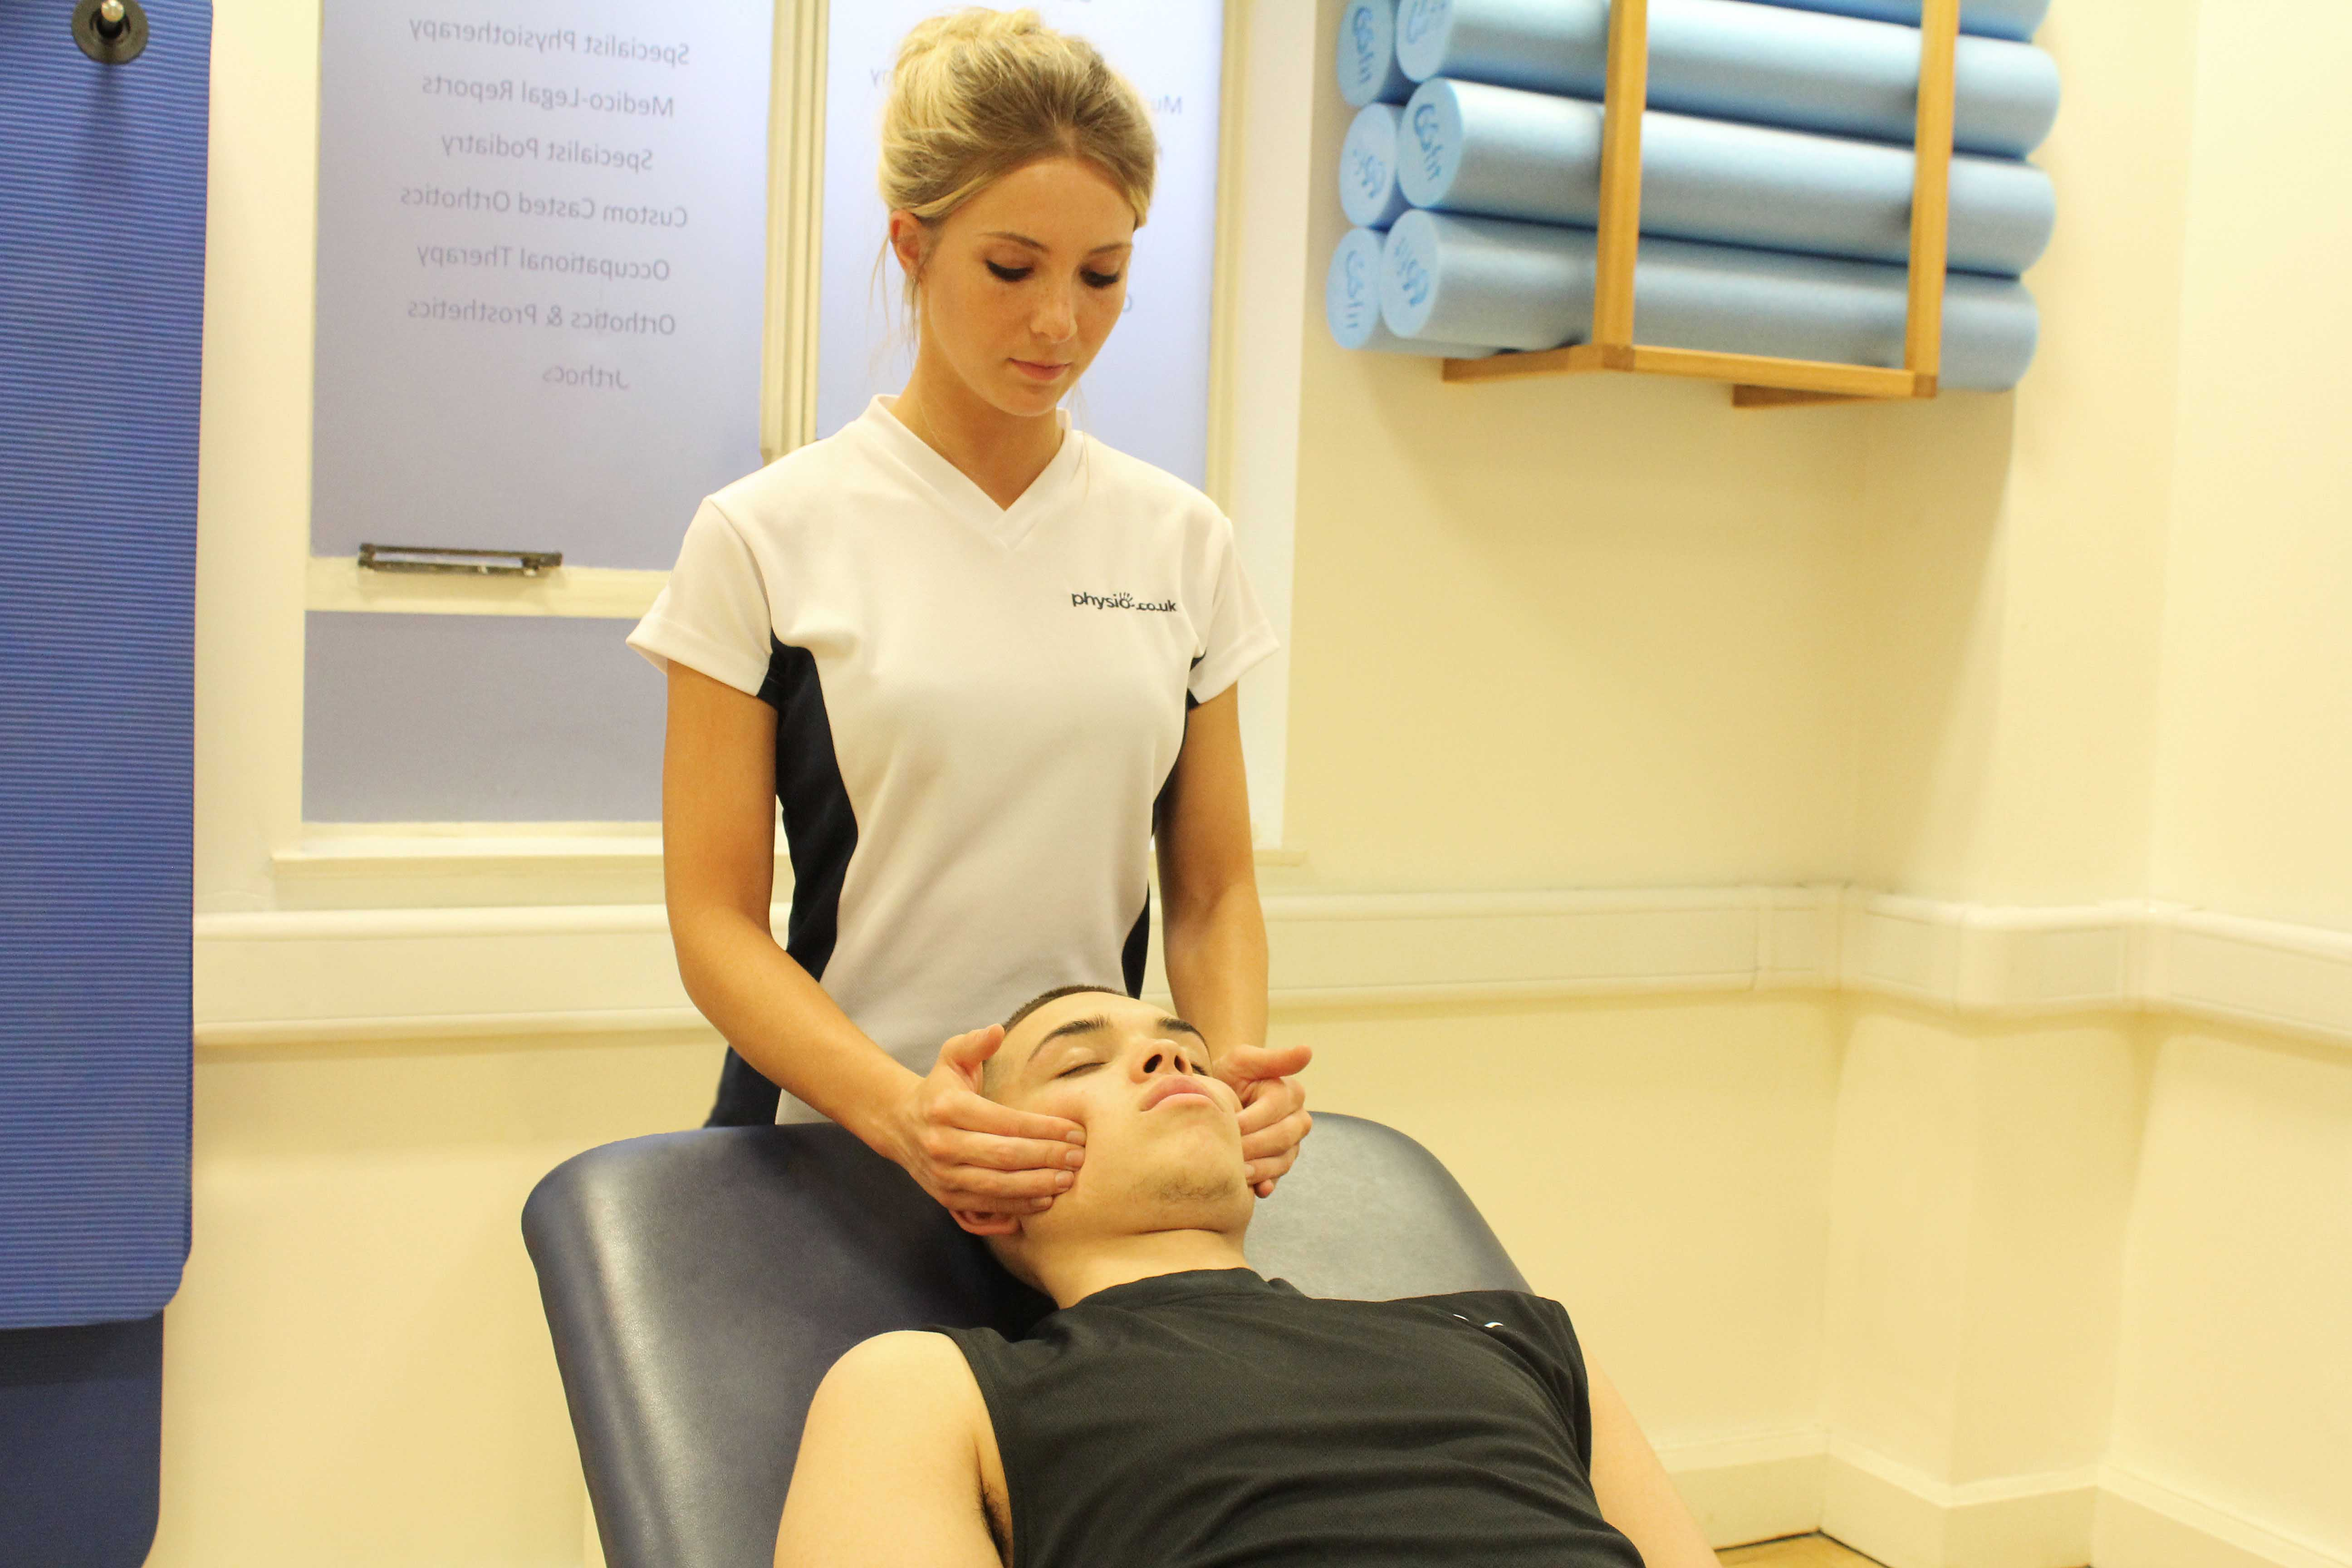 Soft tissue massage and mobilisation of the jaw to relieve stiffness and pain